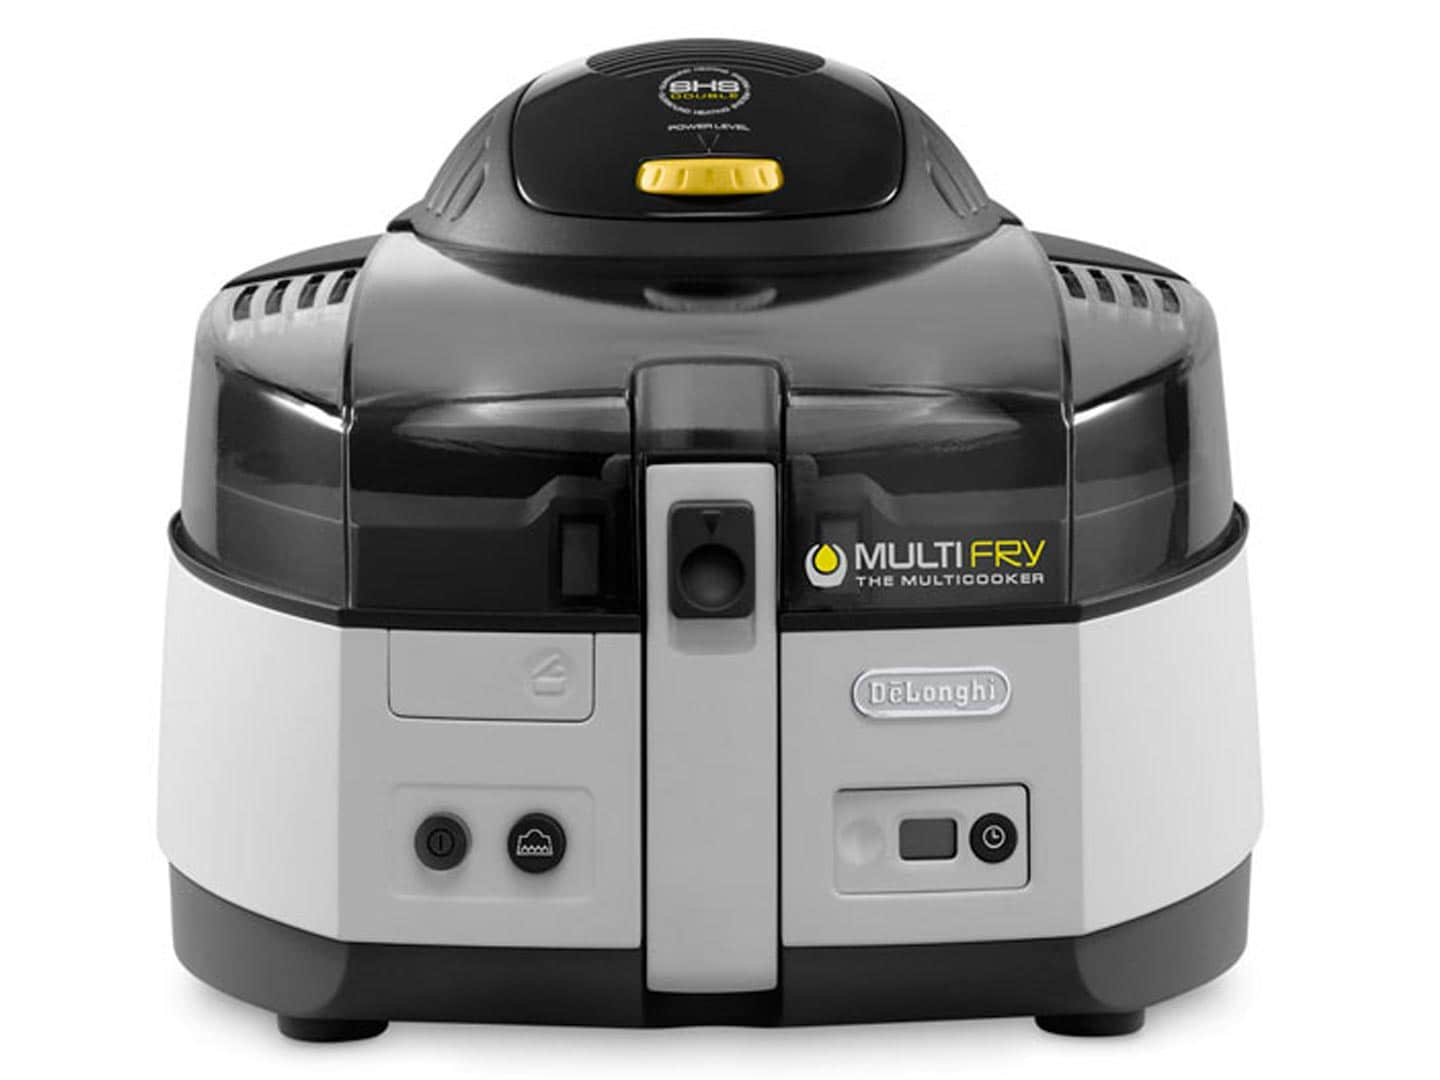 DeLonghi Low-Oil air fryer and Multicooker Classic FH1163